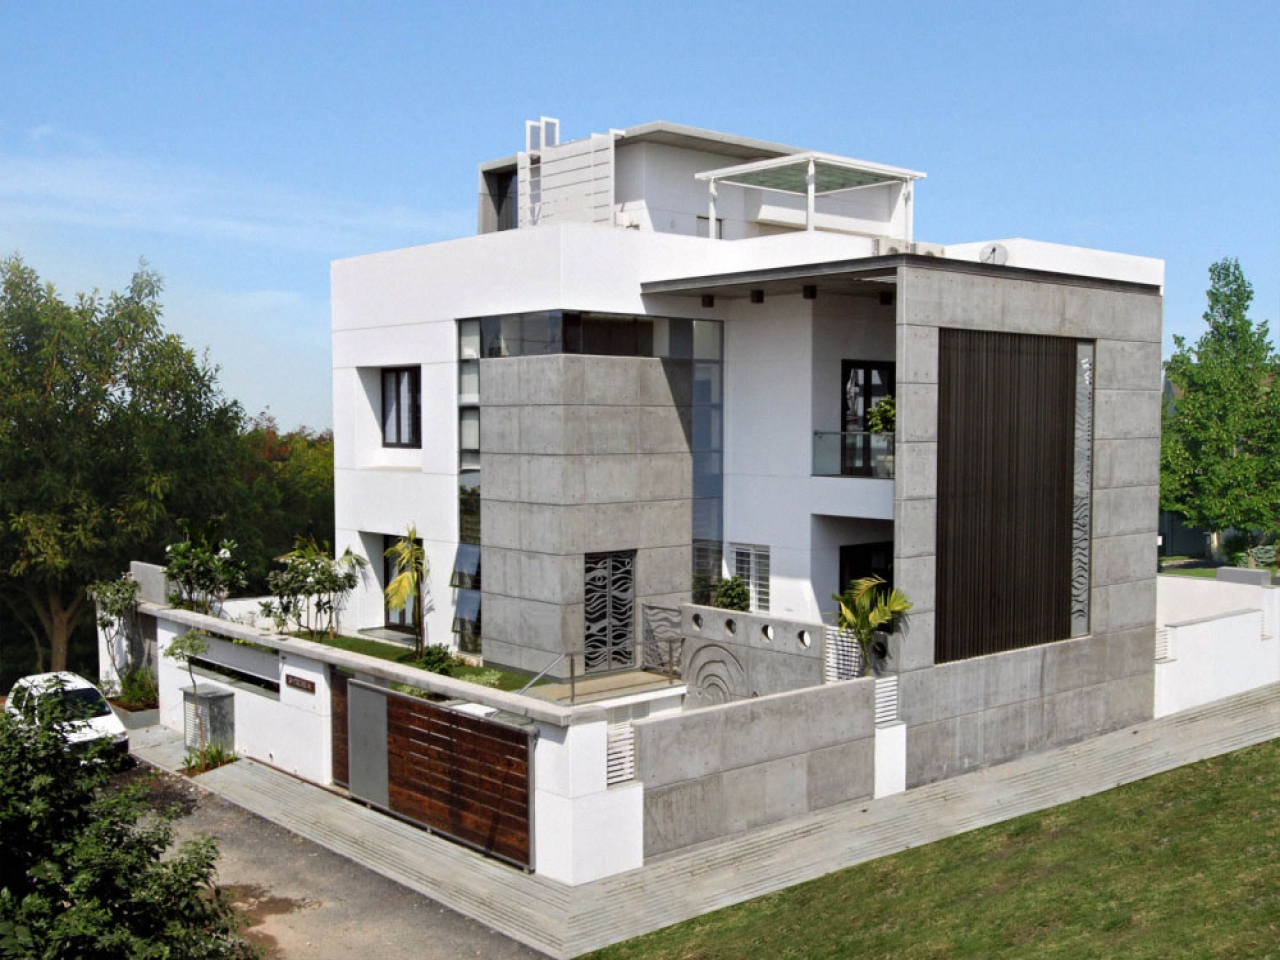 Traditional house exterior designs modern house exterior for Modern exterior design pictures